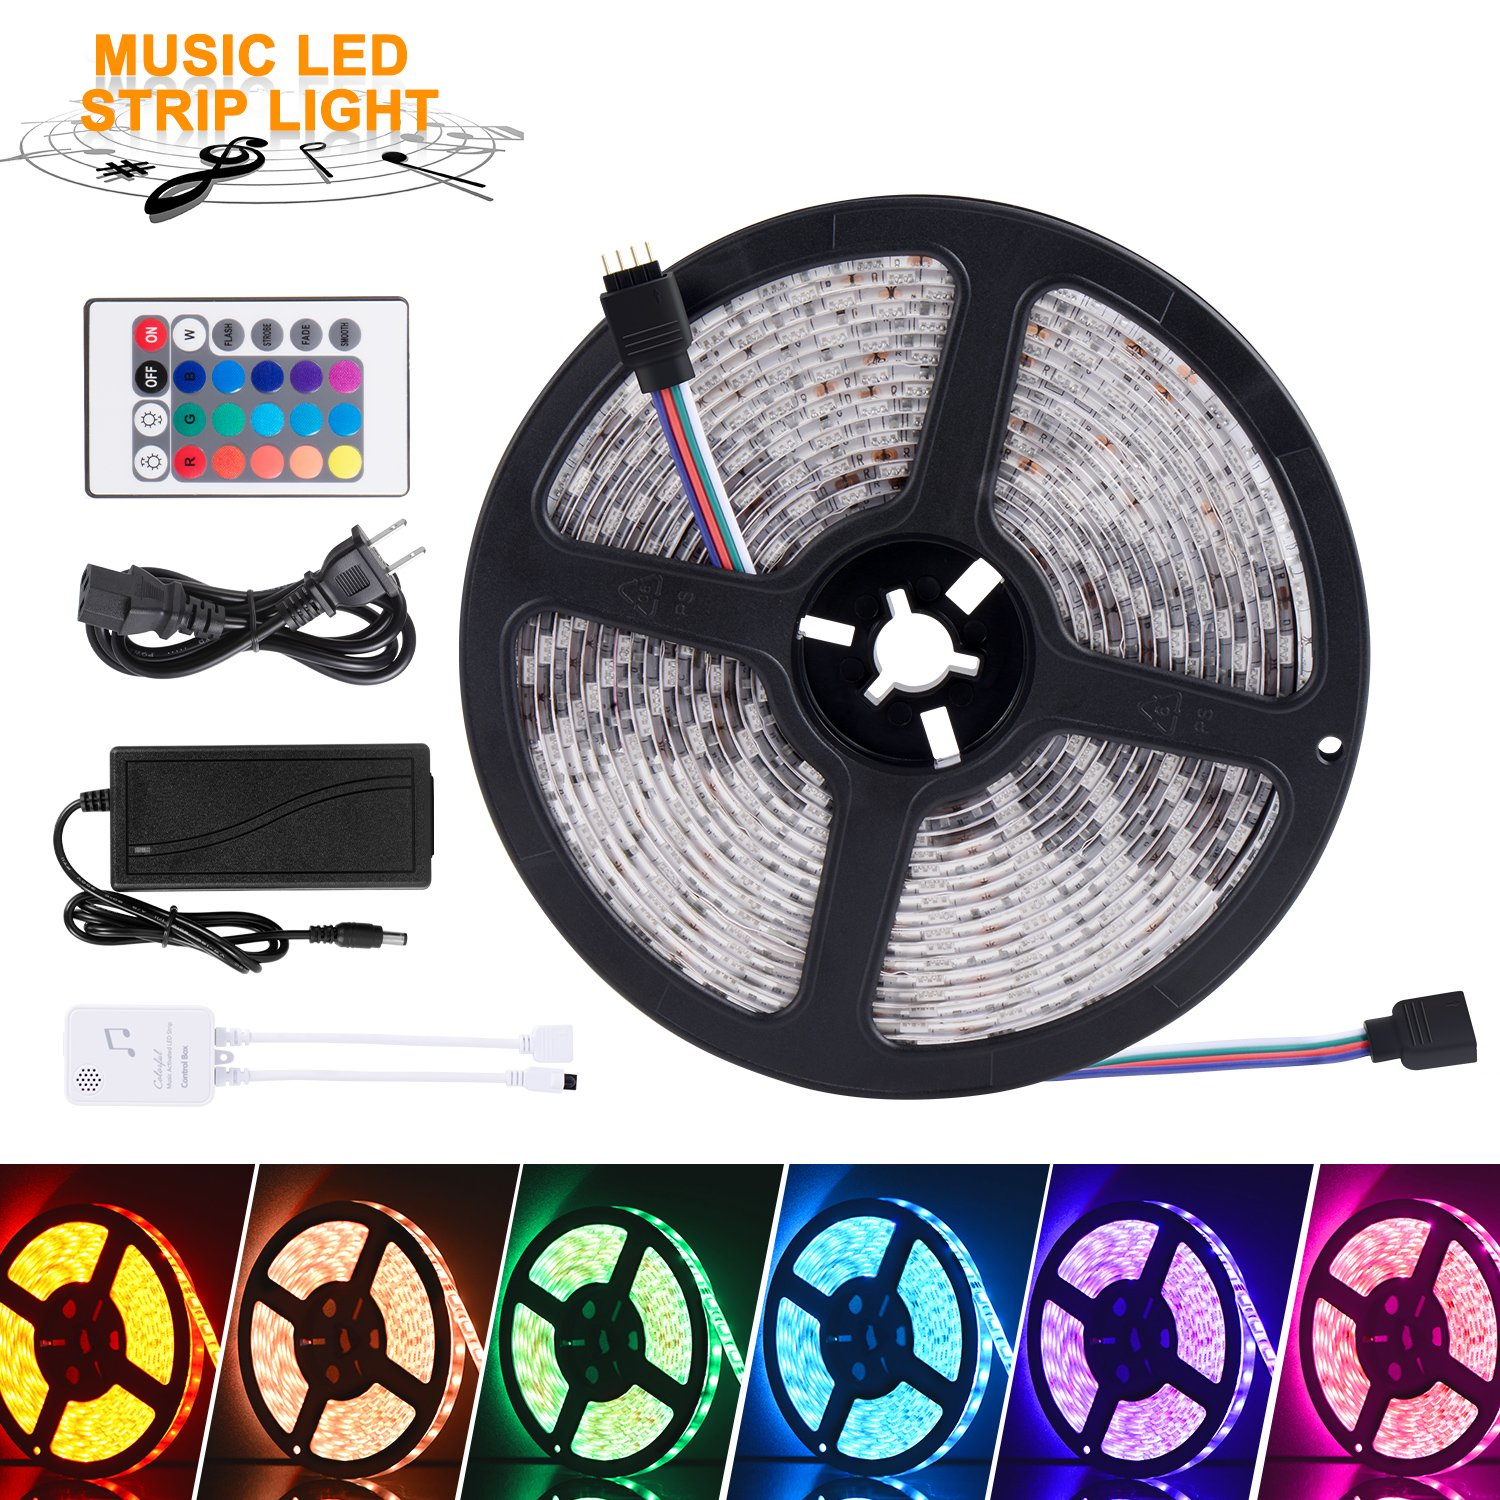 SUNNEST Music Activated LED Strip Light Kit, Waterproof 16.4ft 300 LEDs RGB SMD 5050 LED Tape with Remote Controller, IR Receiver, Power Supply, Sync with Music by SUNNEST (Image #1)